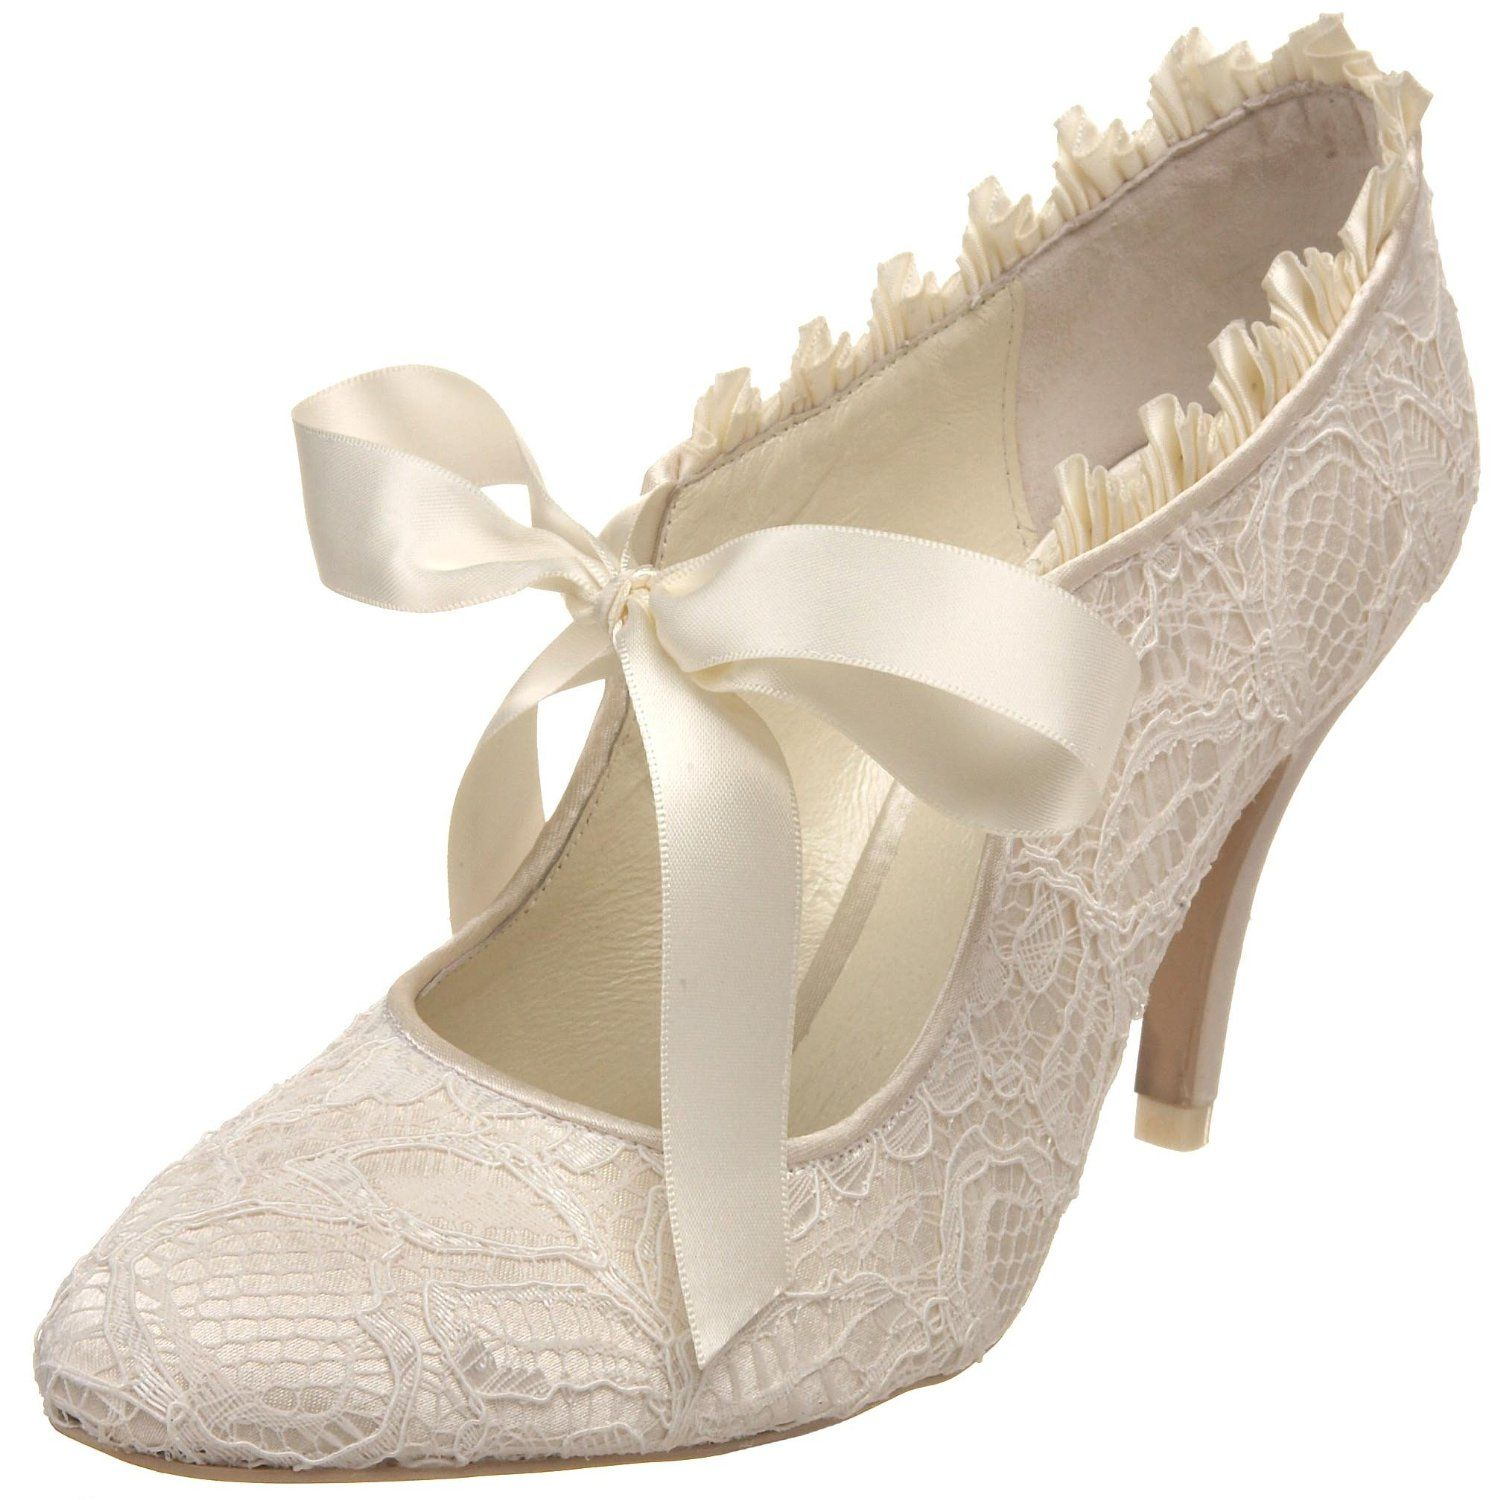 Vintage Wedding Shoe